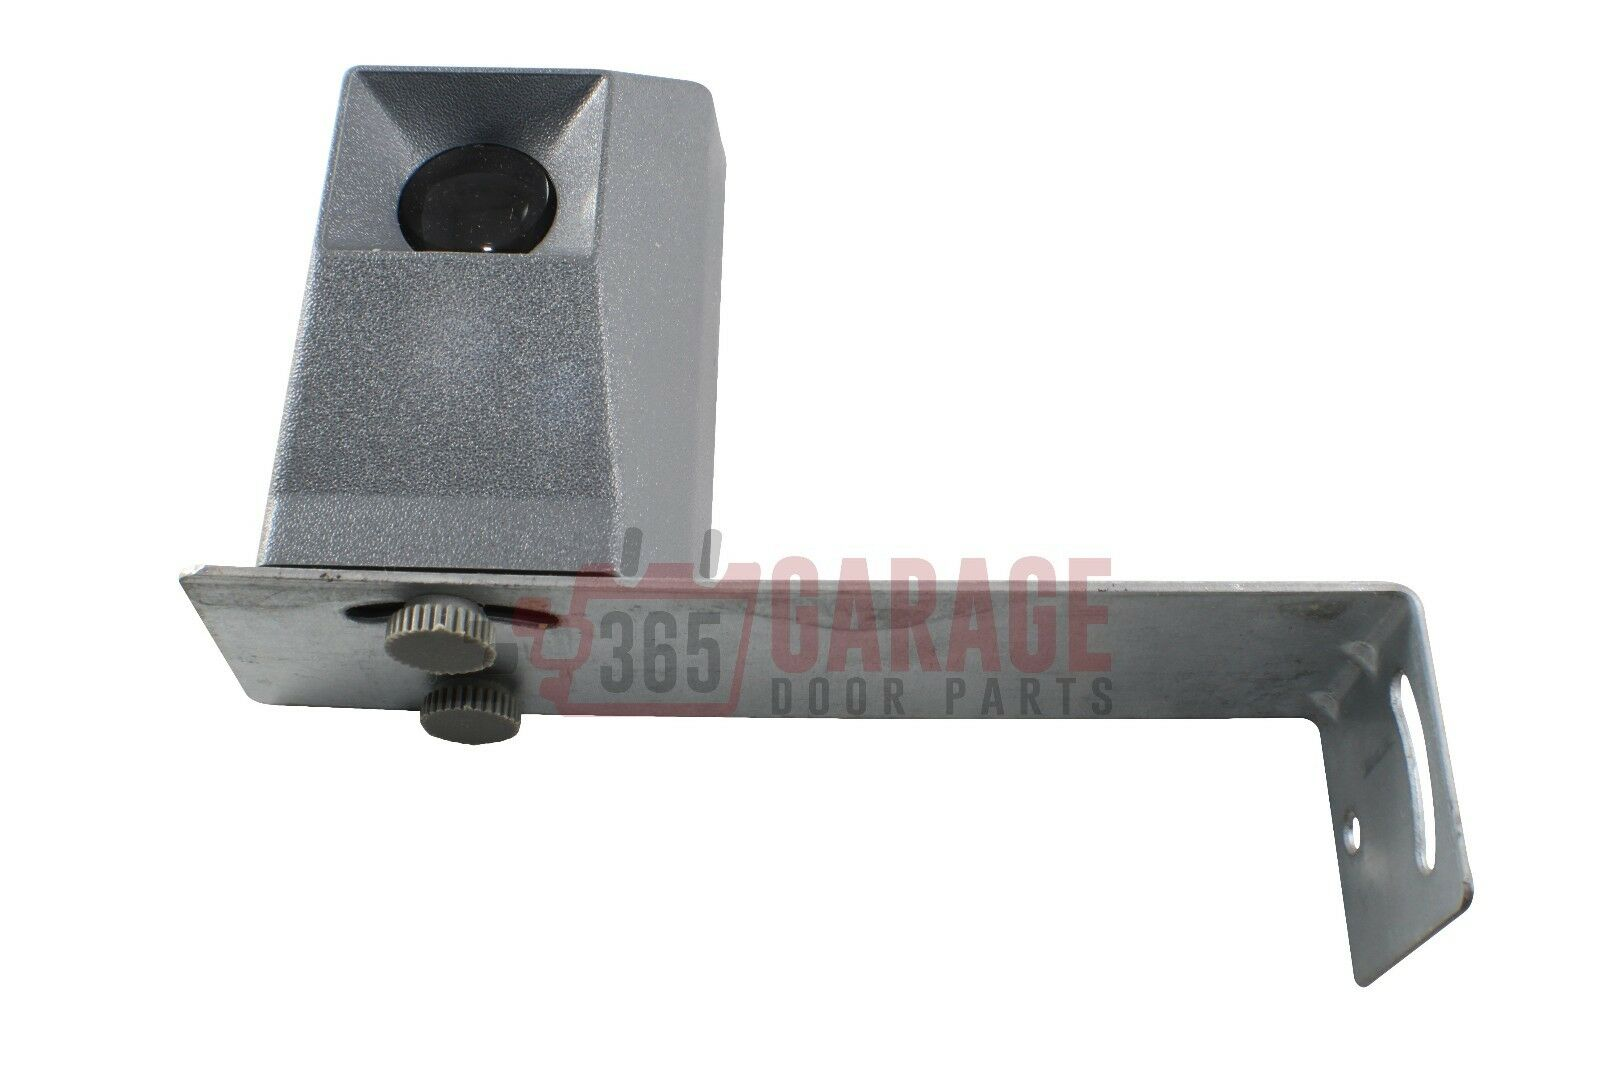 Digi Code Cr2149 Universal Garage Door Opener Safety Beam